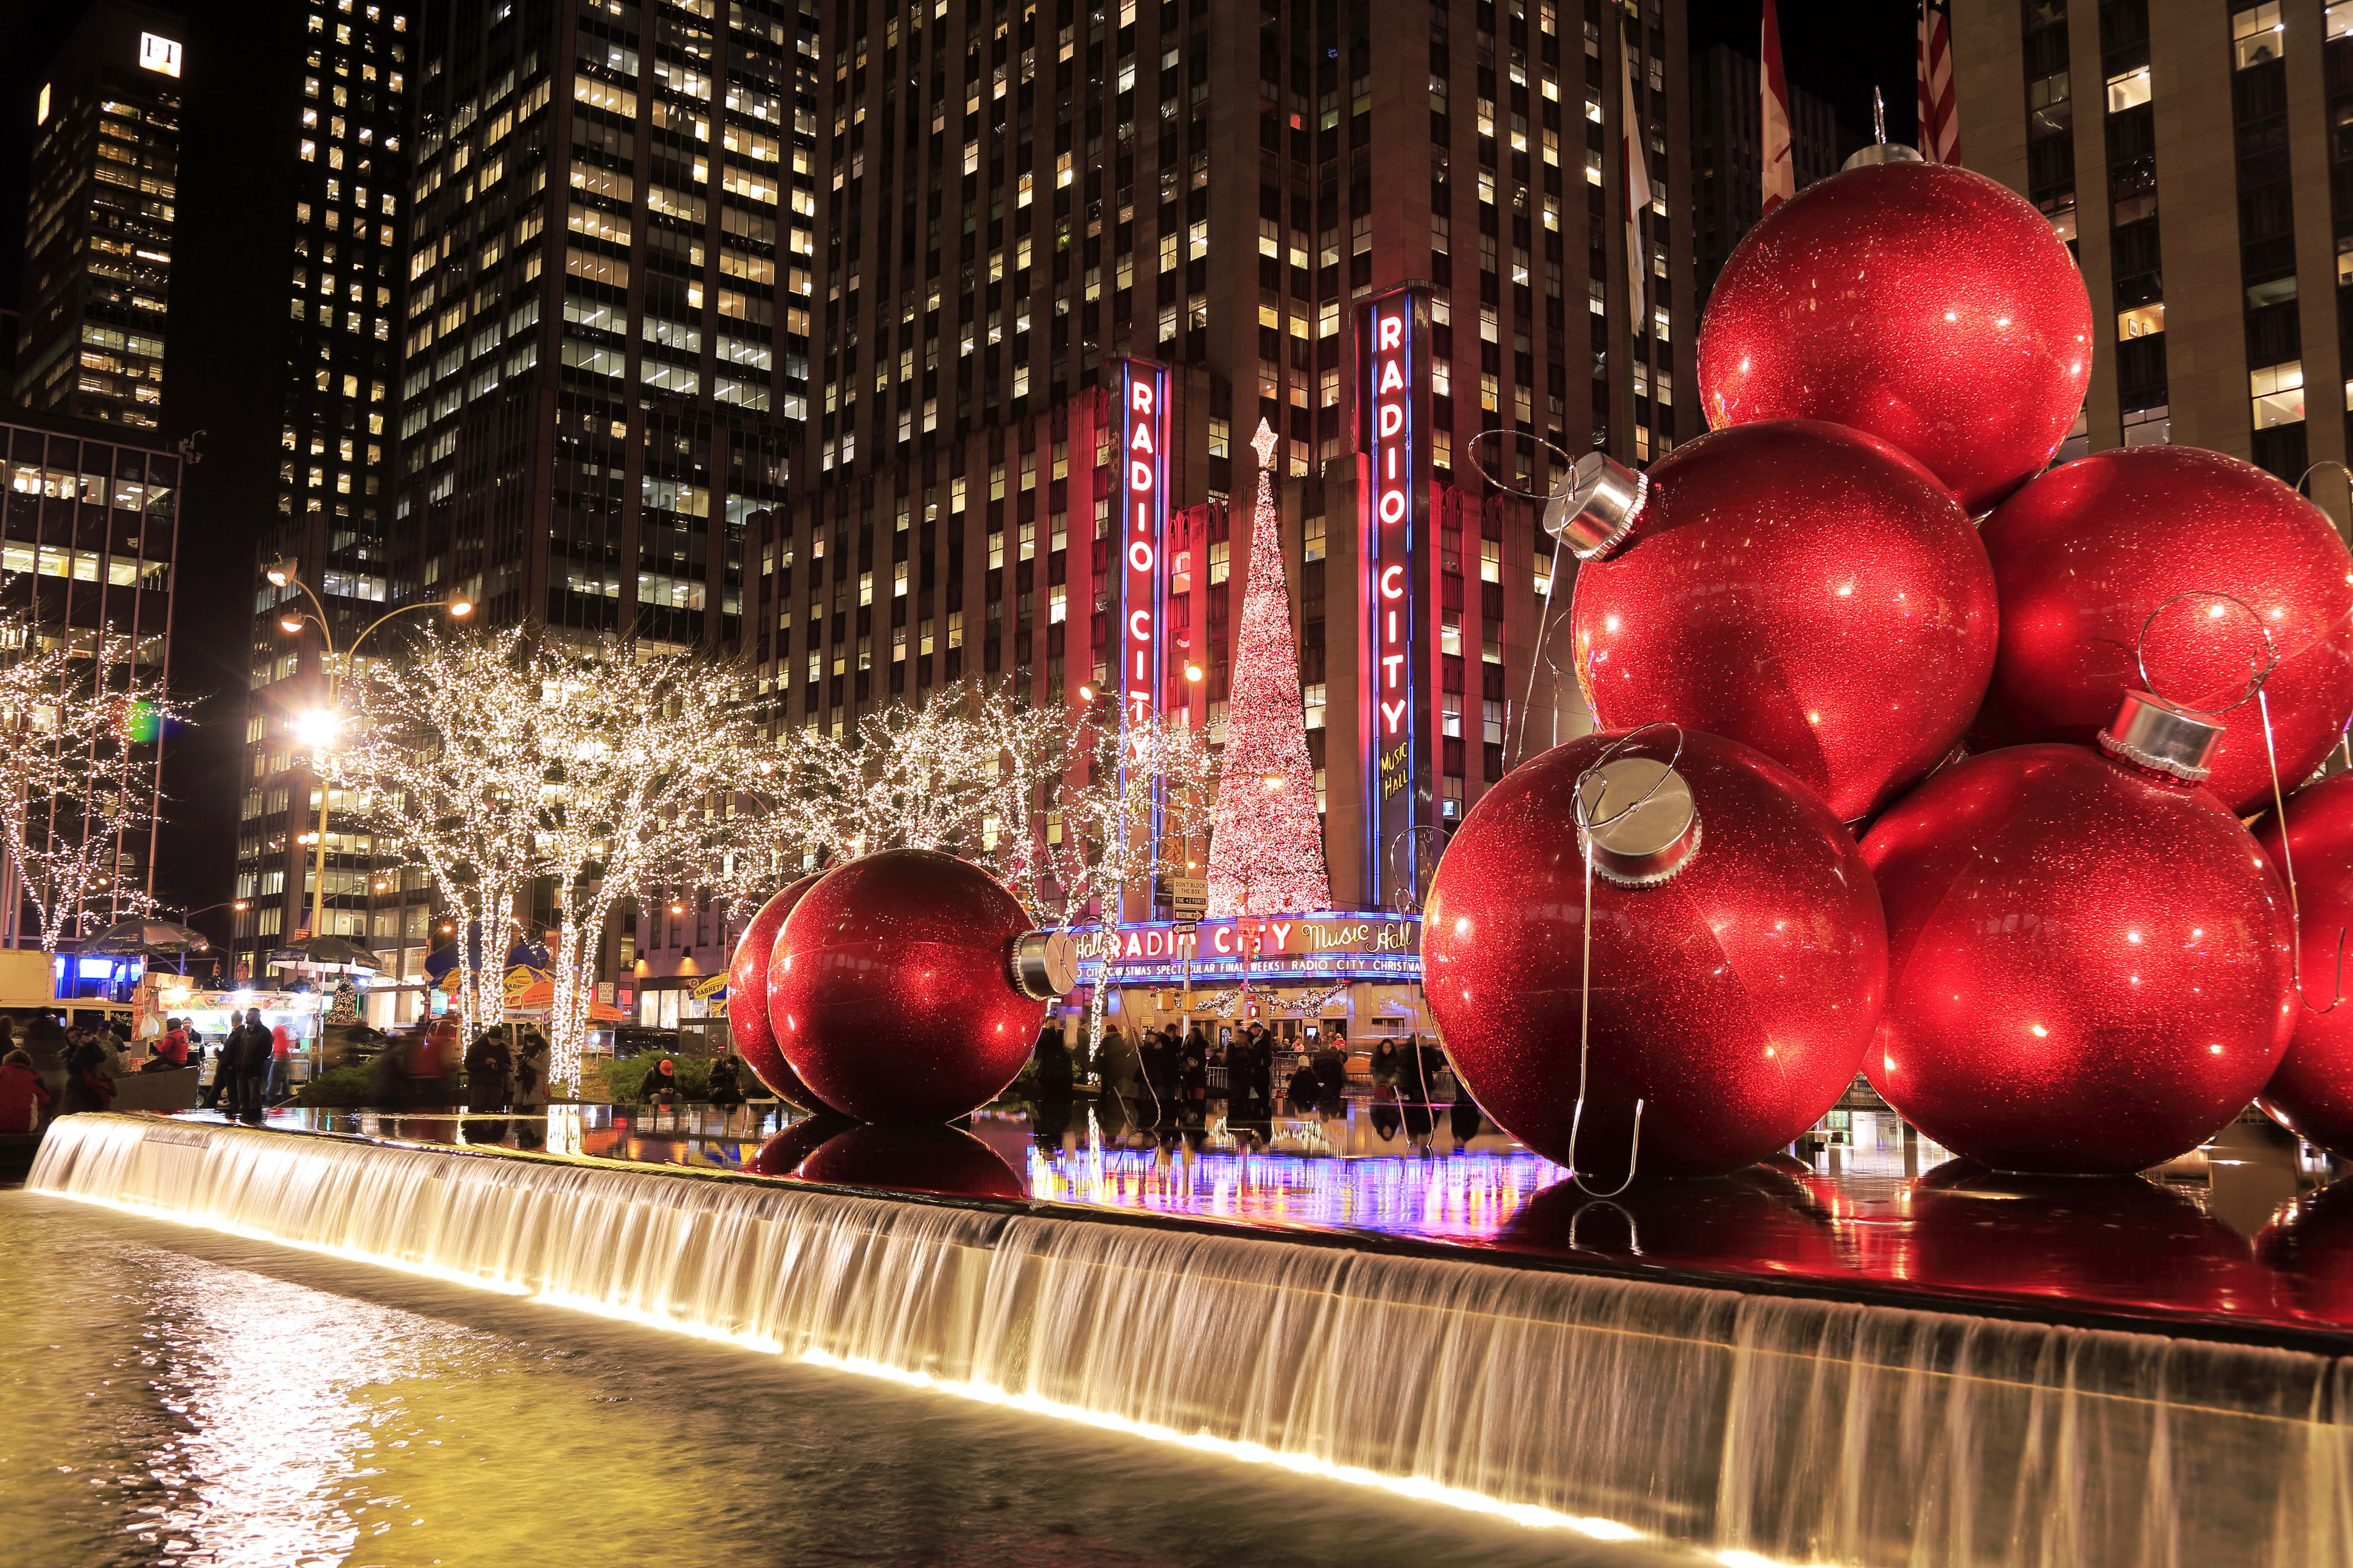 Usa Auto Insurance >> The 6 Best U.S. Destinations to Visit for Christmas